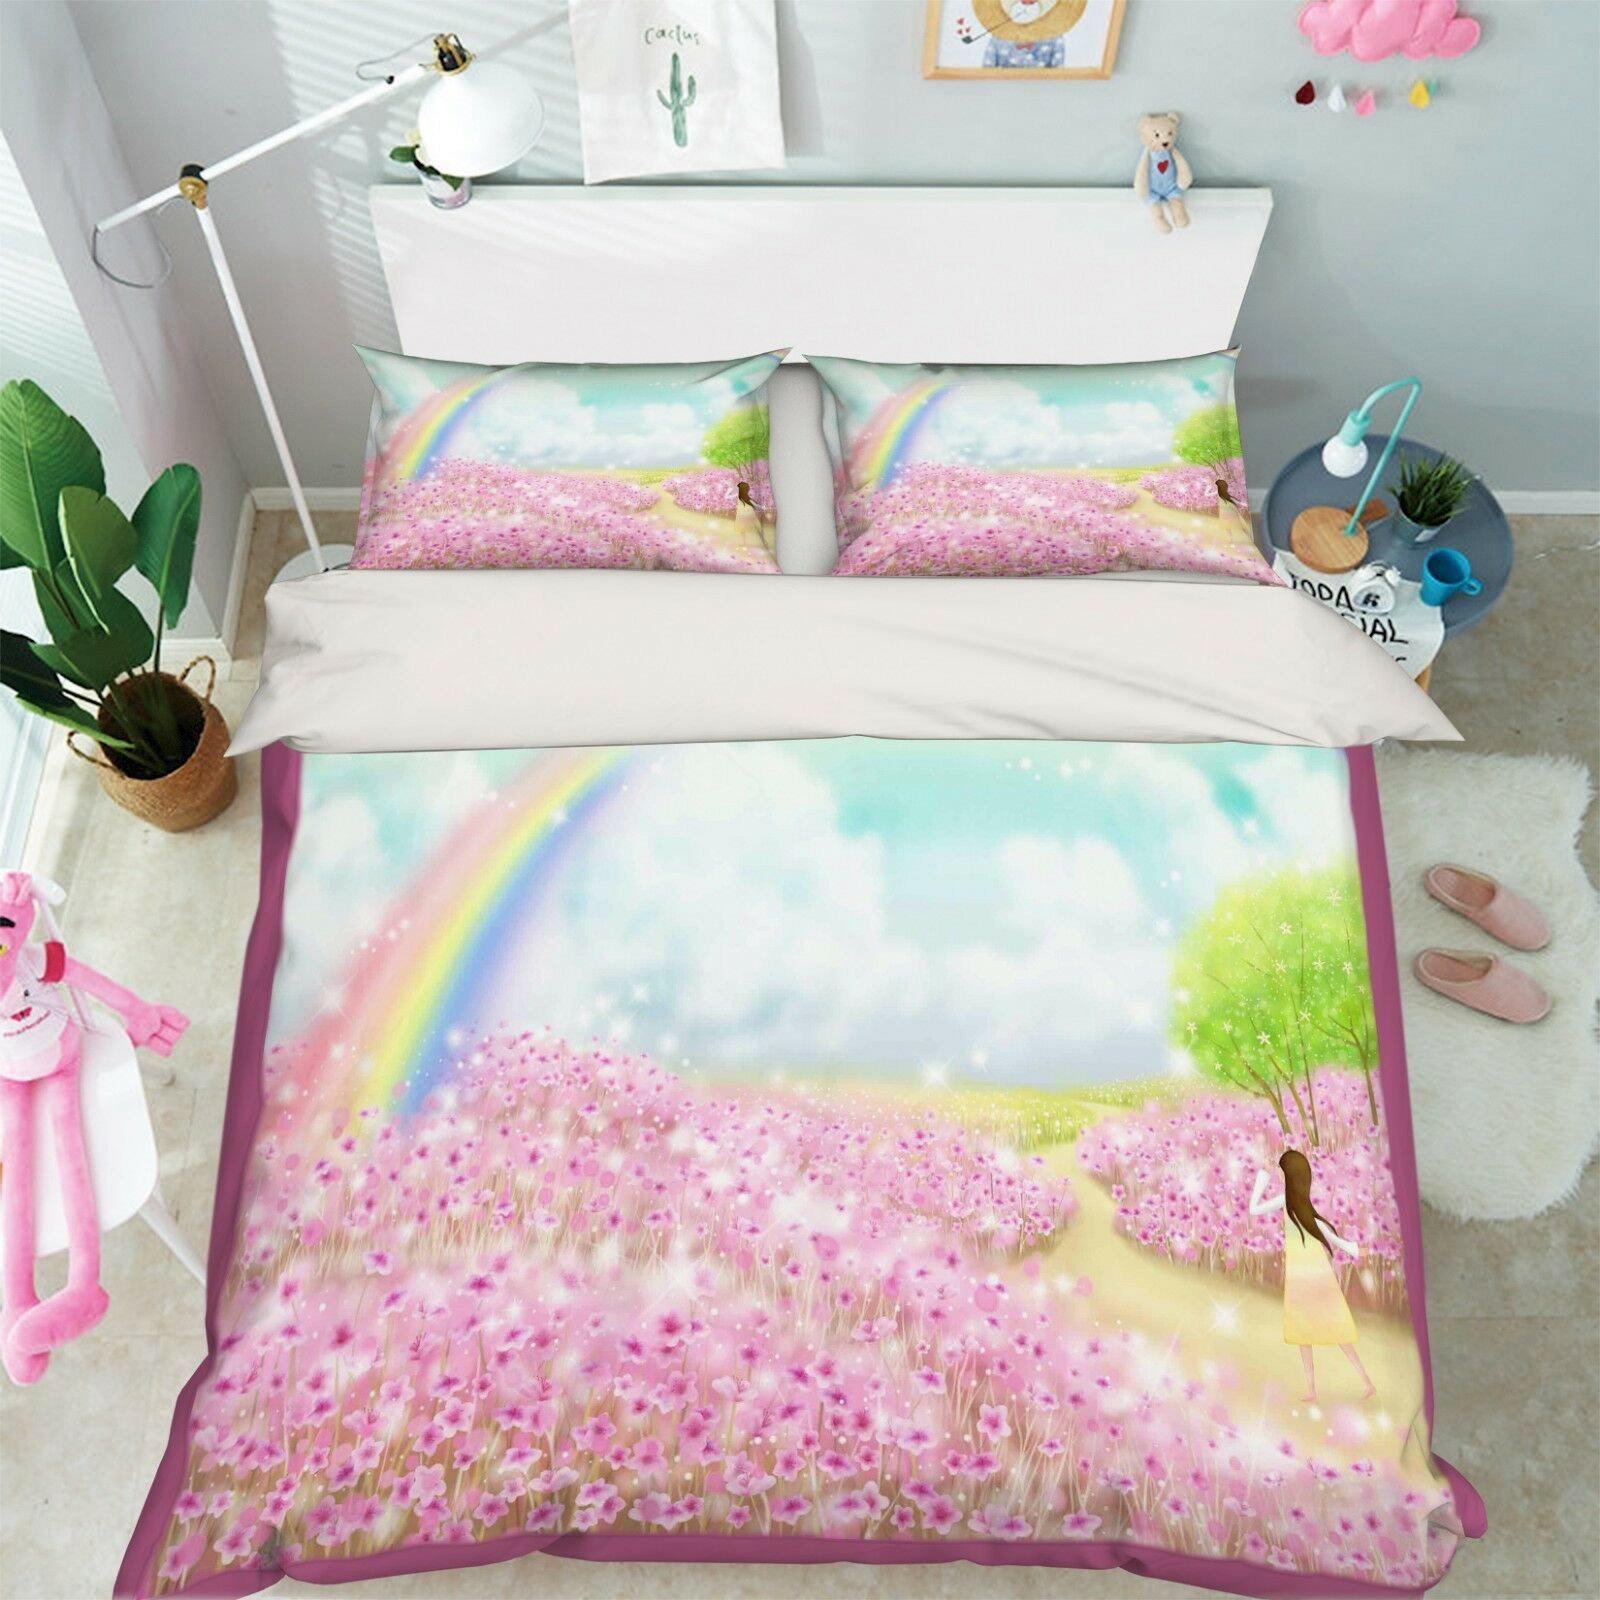 3D Rainbow Flower 76 Bed Pillowcases Quilt Duvet Cover Set Single King UK Summer